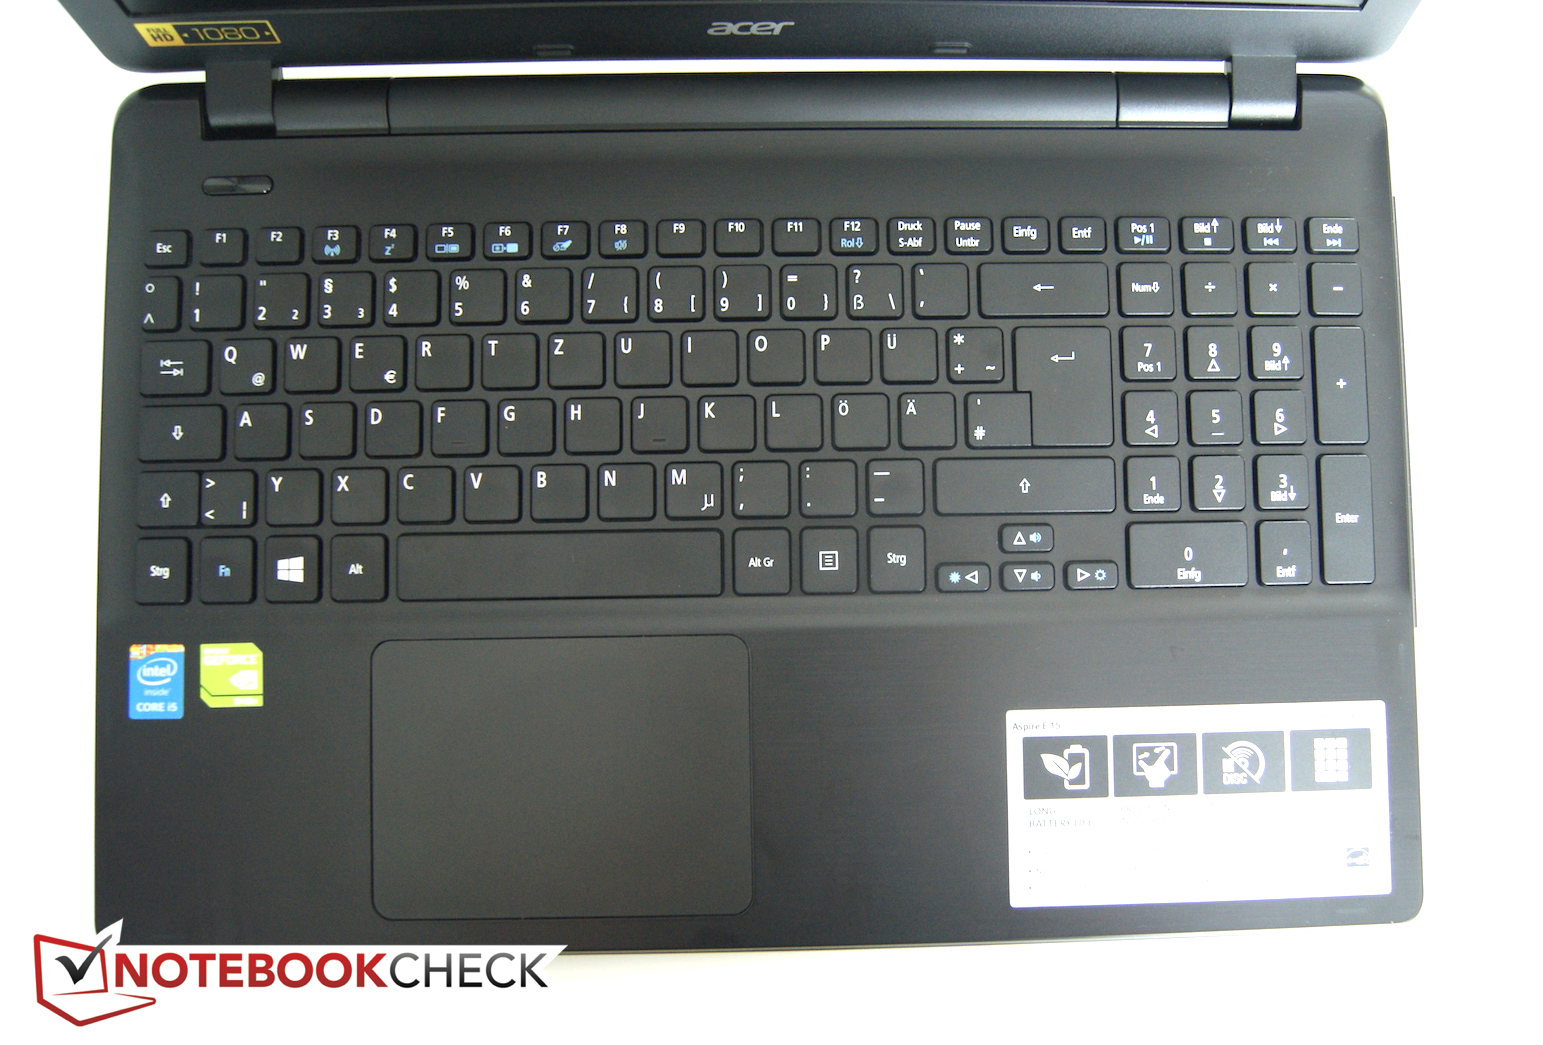 Acer Aspire E5 571g Notebook Review Update Notebookcheck